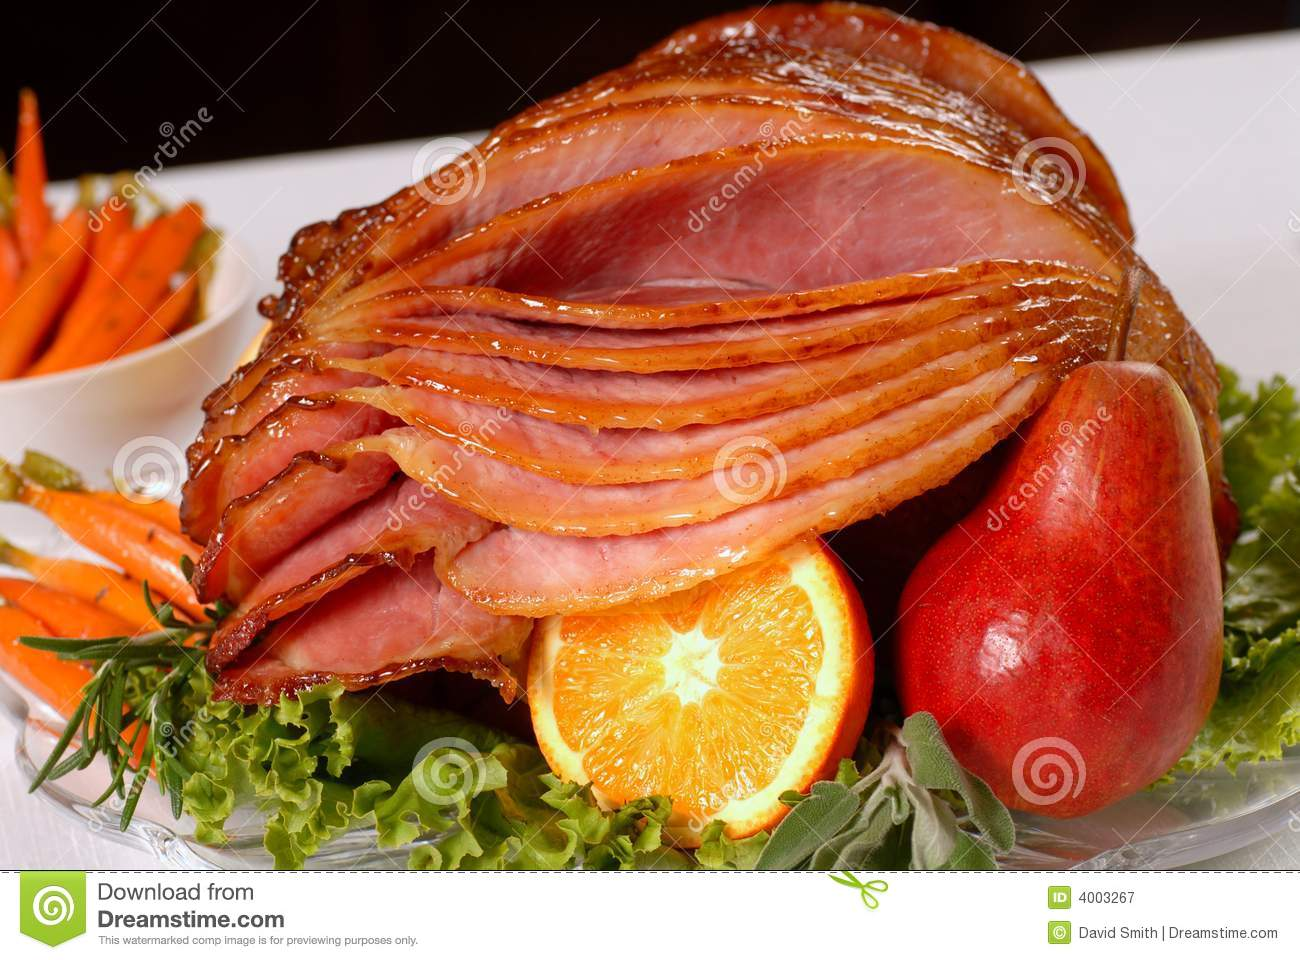 ... Free Stock Photography: Honey glazed Easter ham with fruit and carrots